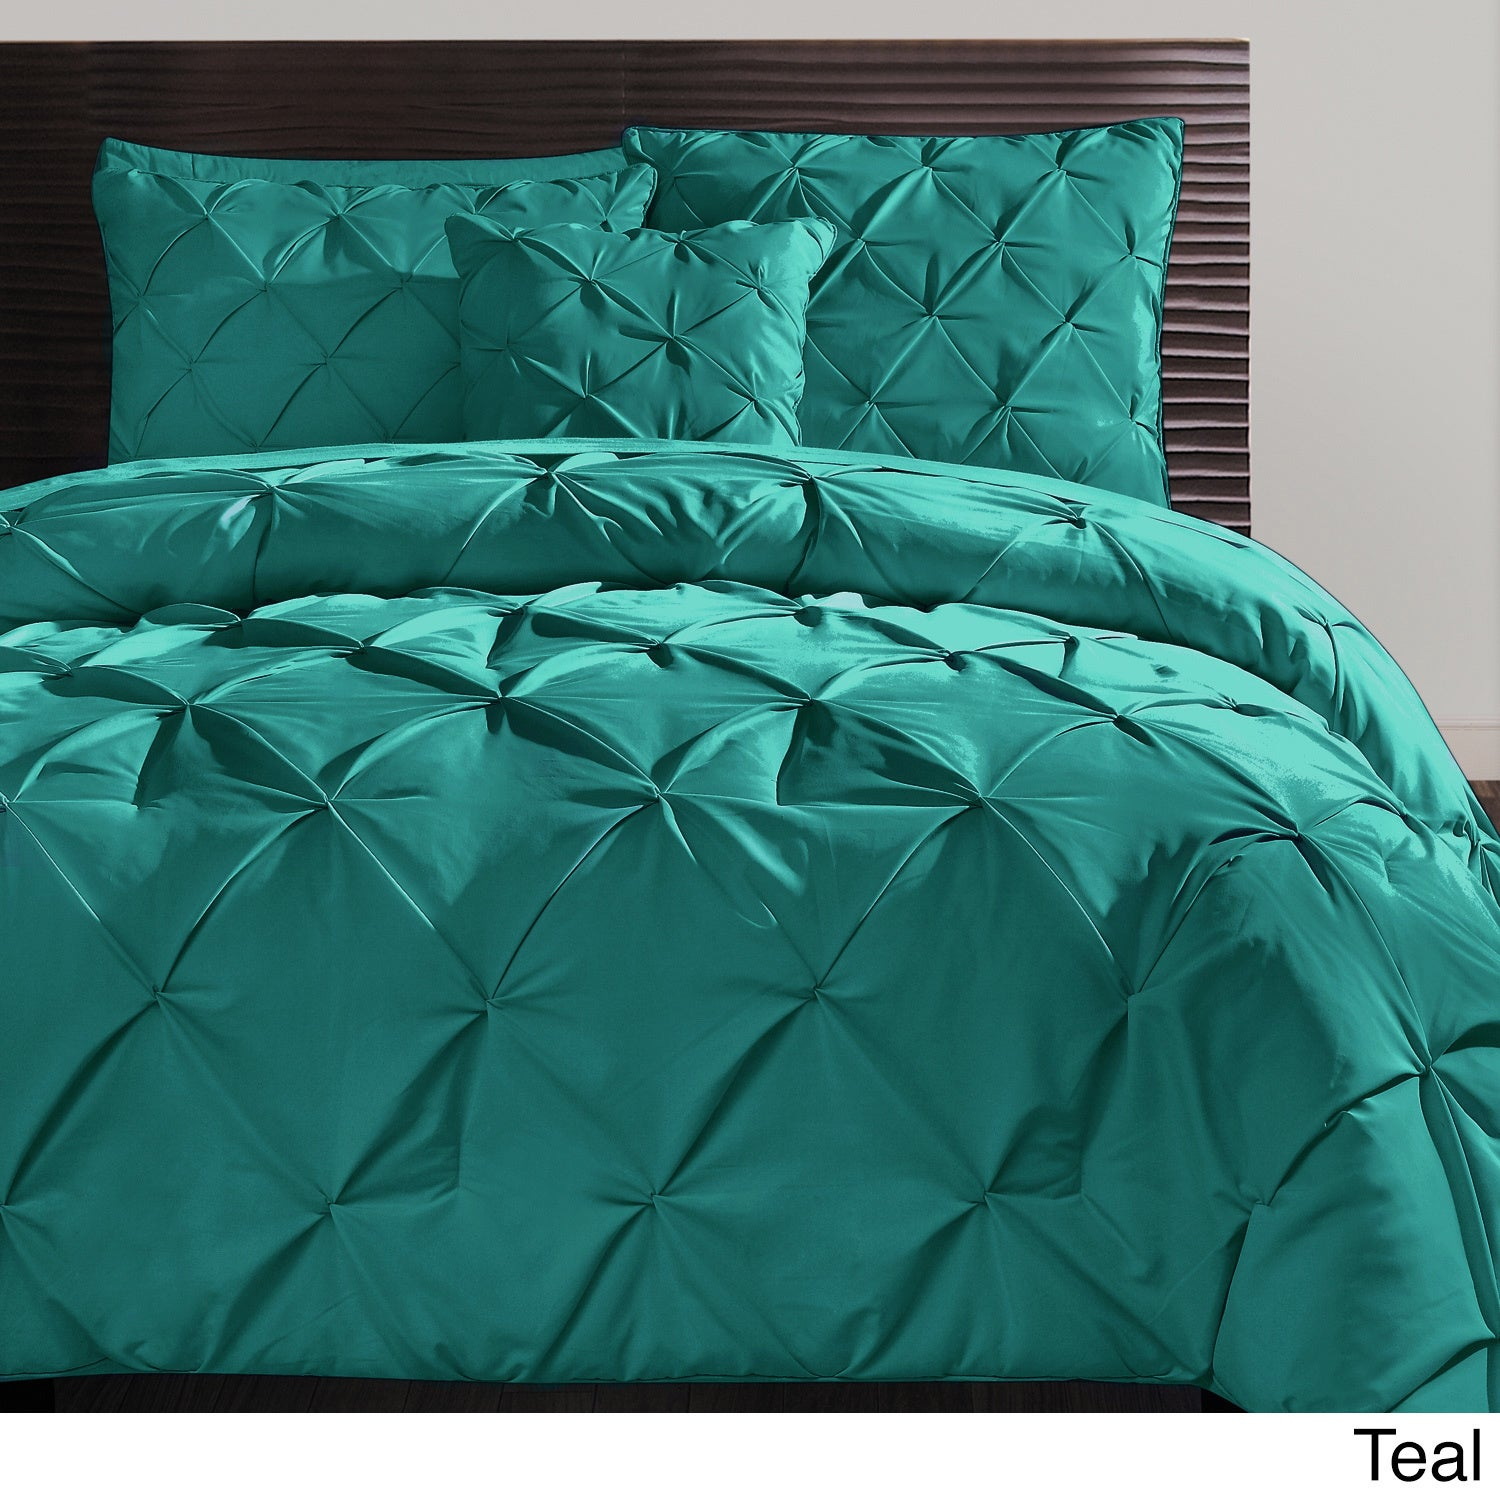 Superb VCNY Carmen 3 Piece Pintuck Duvet Cover Set   Free Shipping Today    Overstock.com   15125656